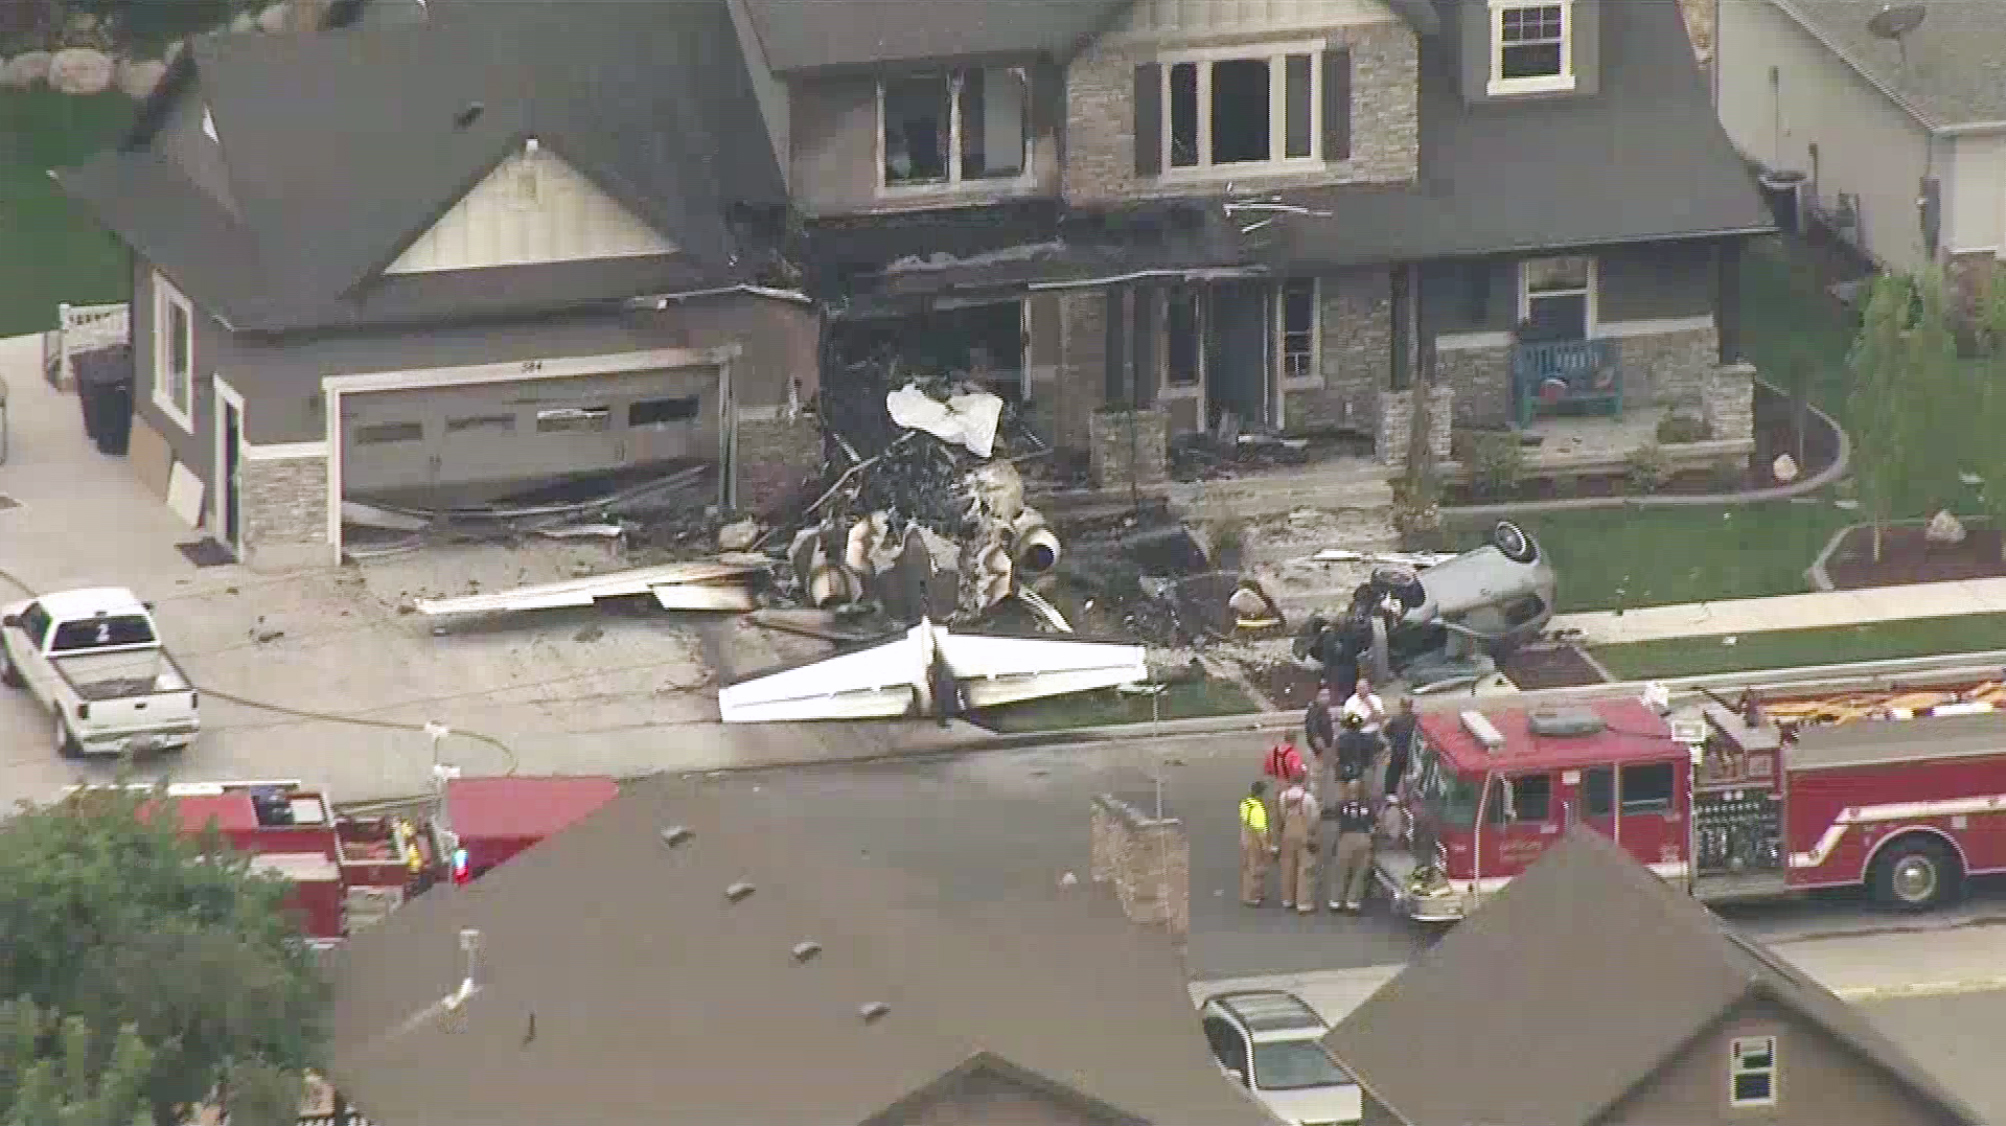 Utah Man Crashes Plane Into His Own House After Assaulting Wife